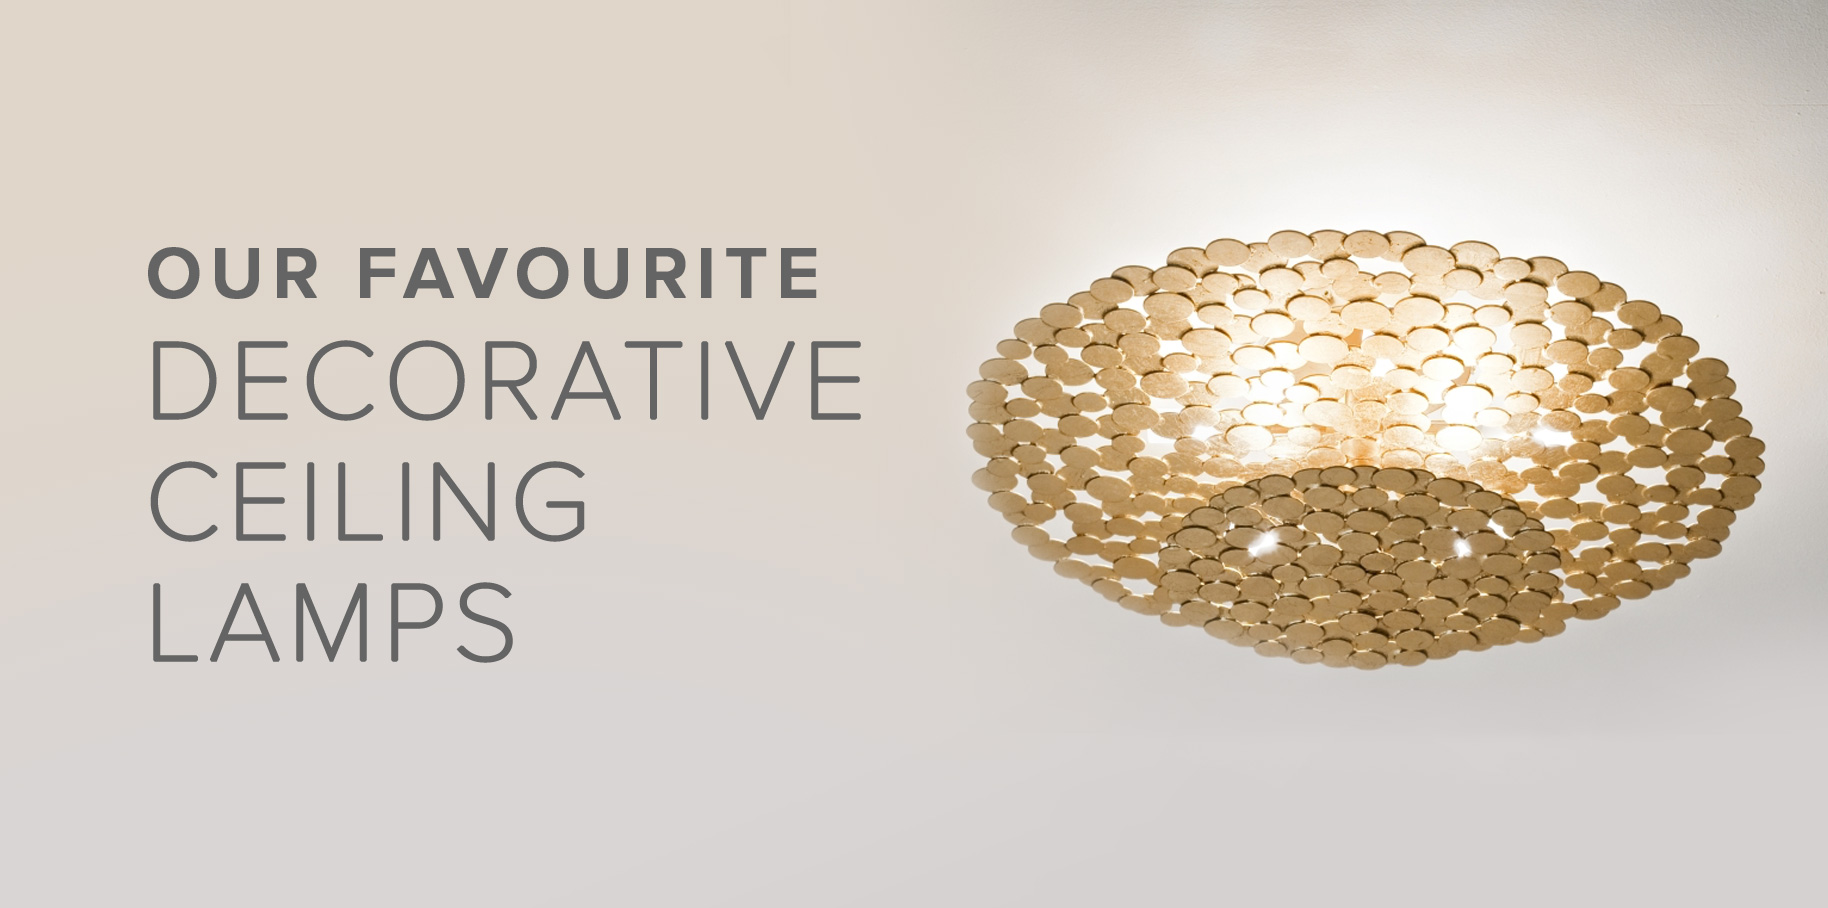 Our Favourite Decorative Ceiling Lamps